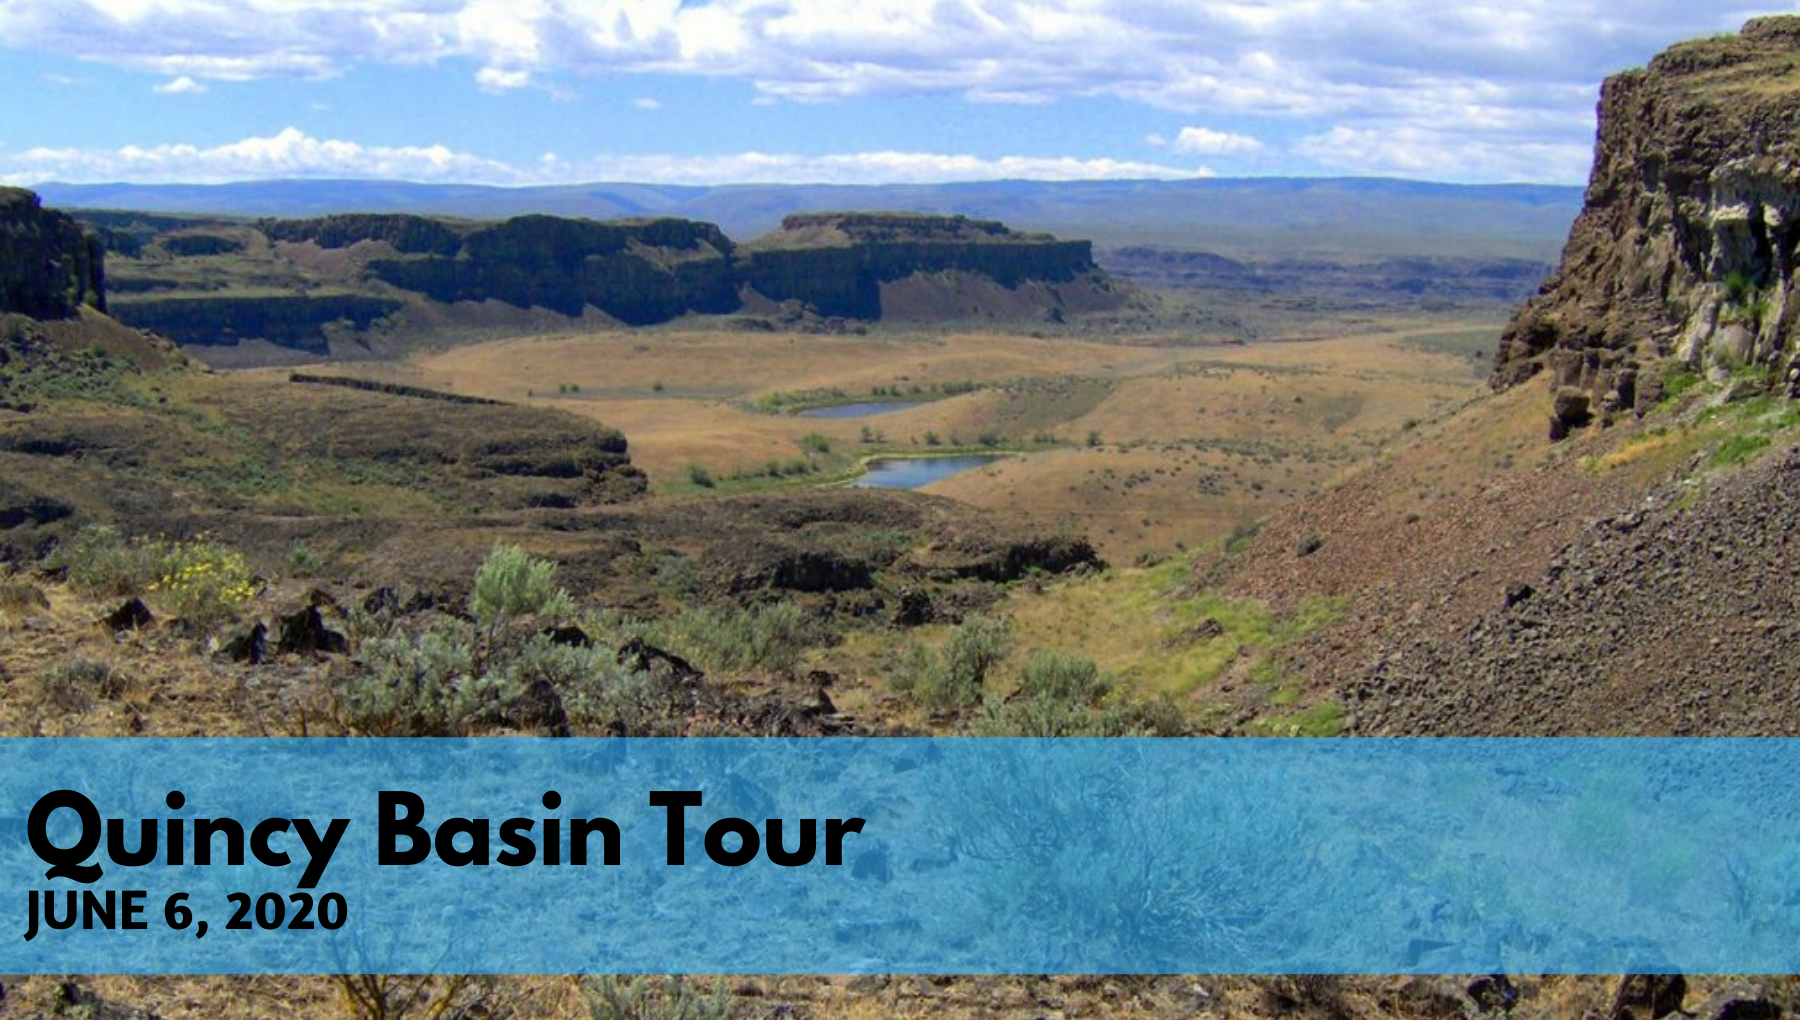 Quincy Basin Tour June 6